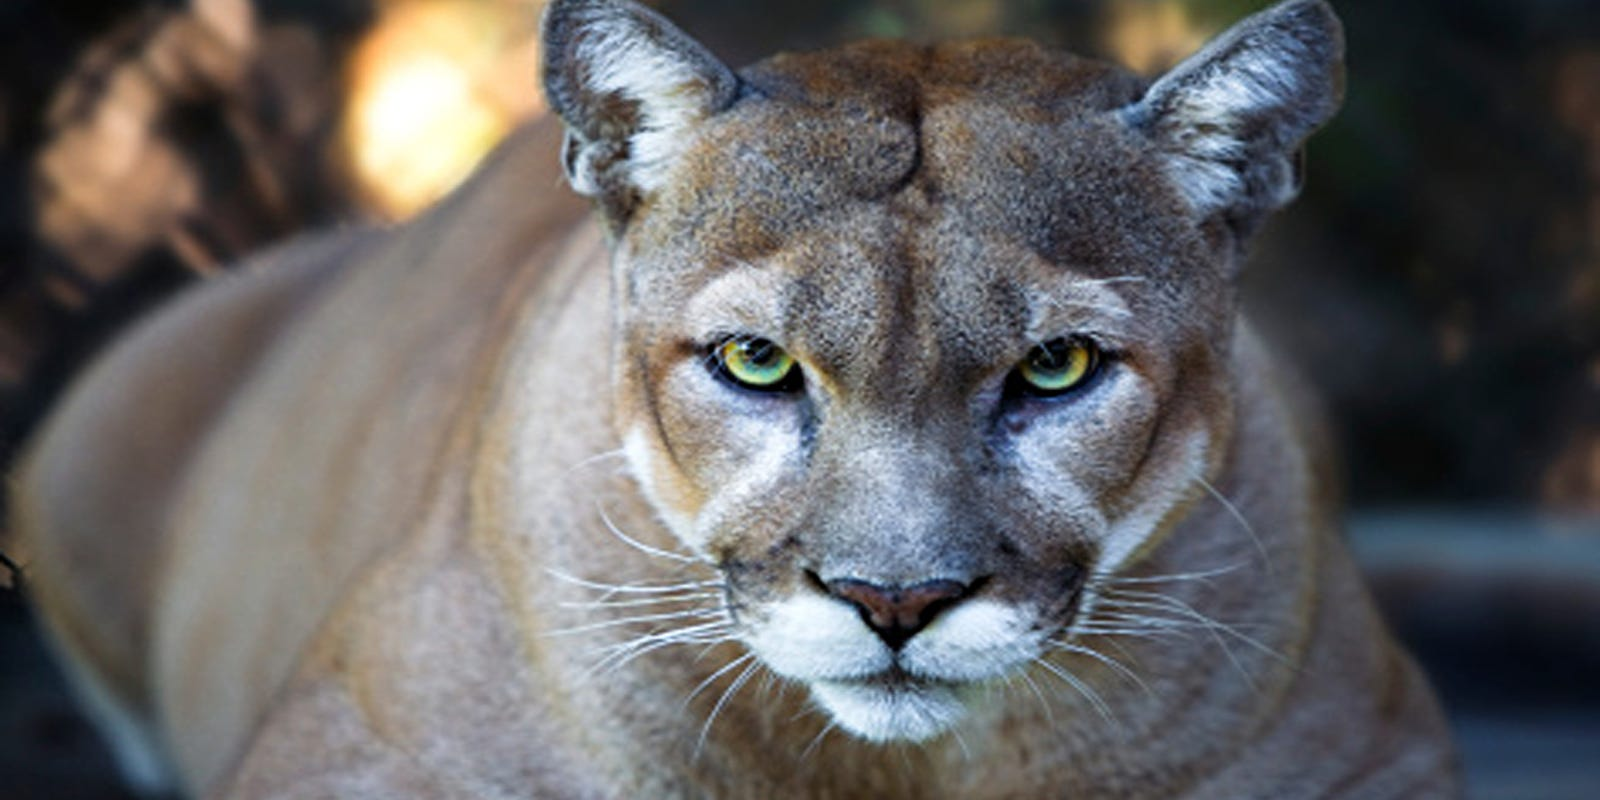 20th Florida Panther Of Year Found Dead